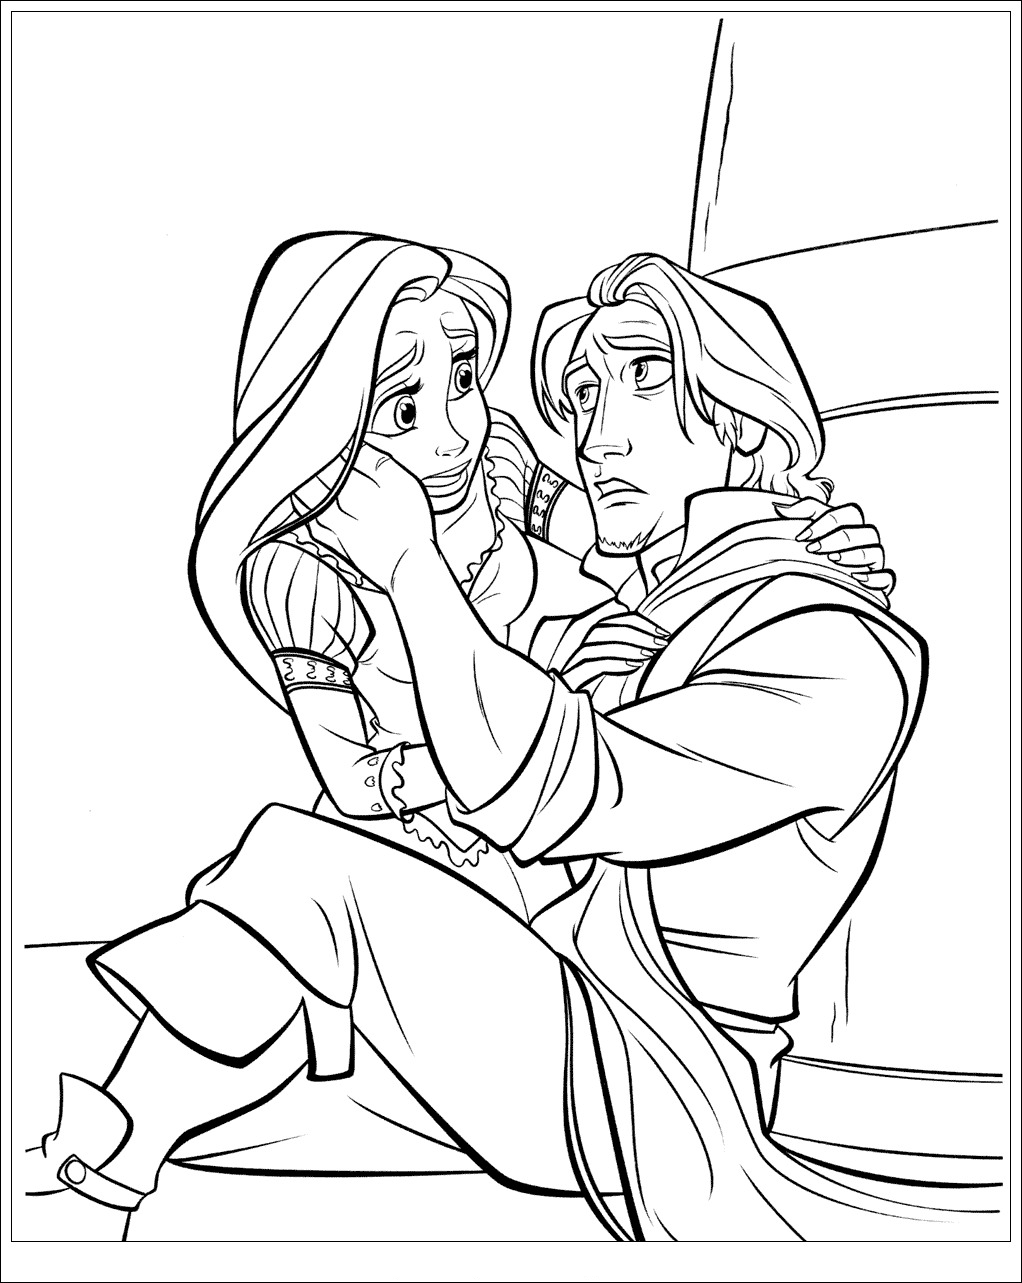 Printable Tangled coloring page to print and color for free : Rapunzel and Flynn Rider